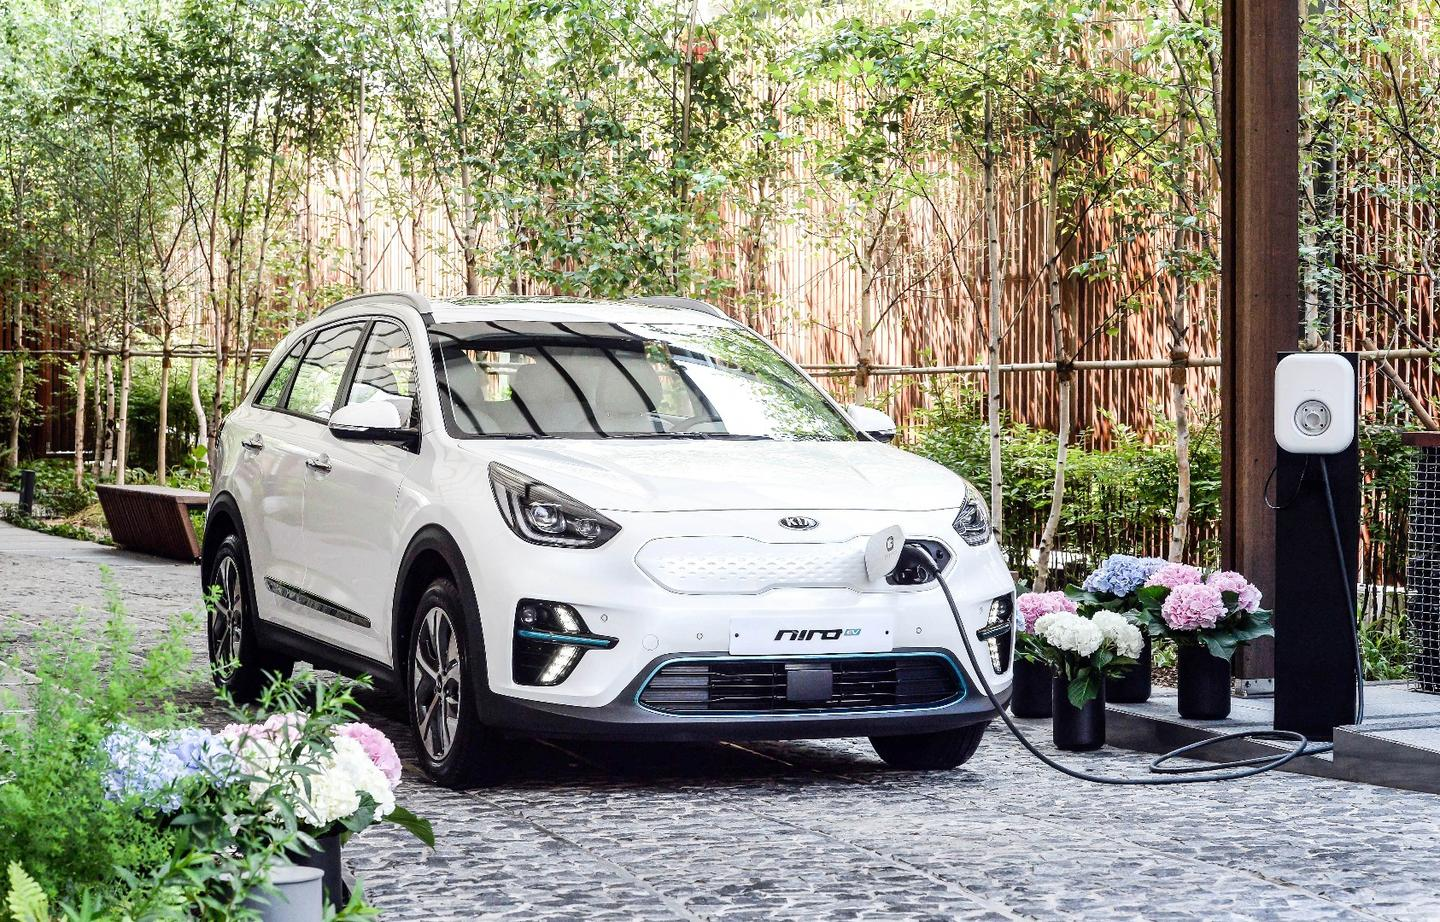 Using a 100-kW fast charger, the Kia Niro EV's battery pack can be charged to 80 percent in a claimed 54 minutes